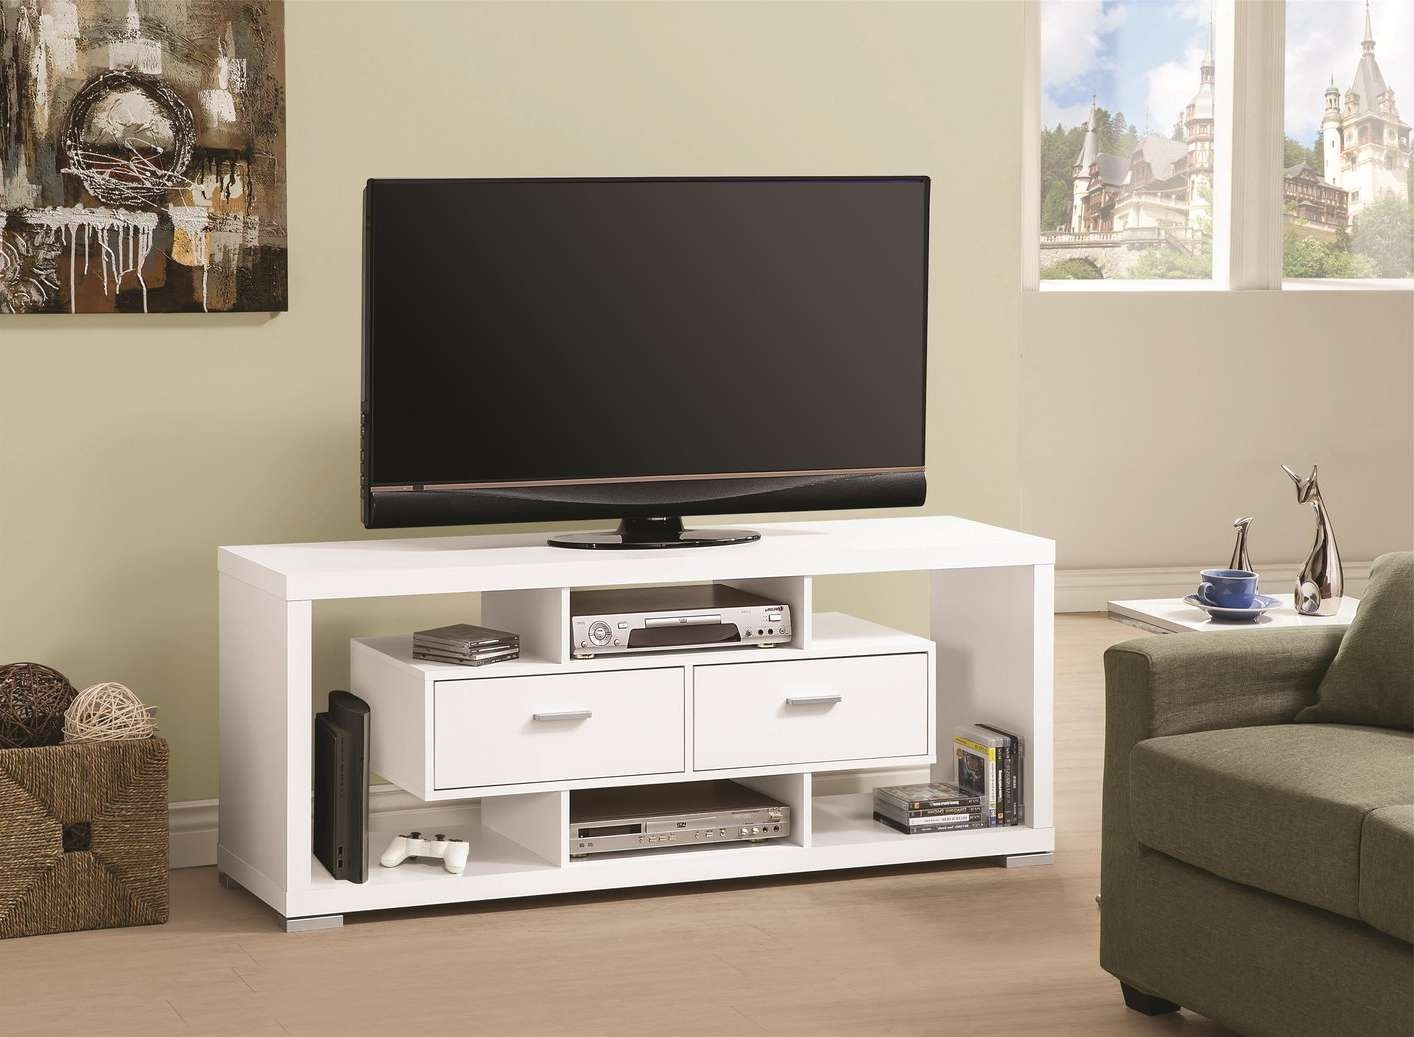 White Wood Tv Stand – Steal A Sofa Furniture Outlet Los Angeles Ca Throughout White Wood Tv Stands (View 13 of 15)